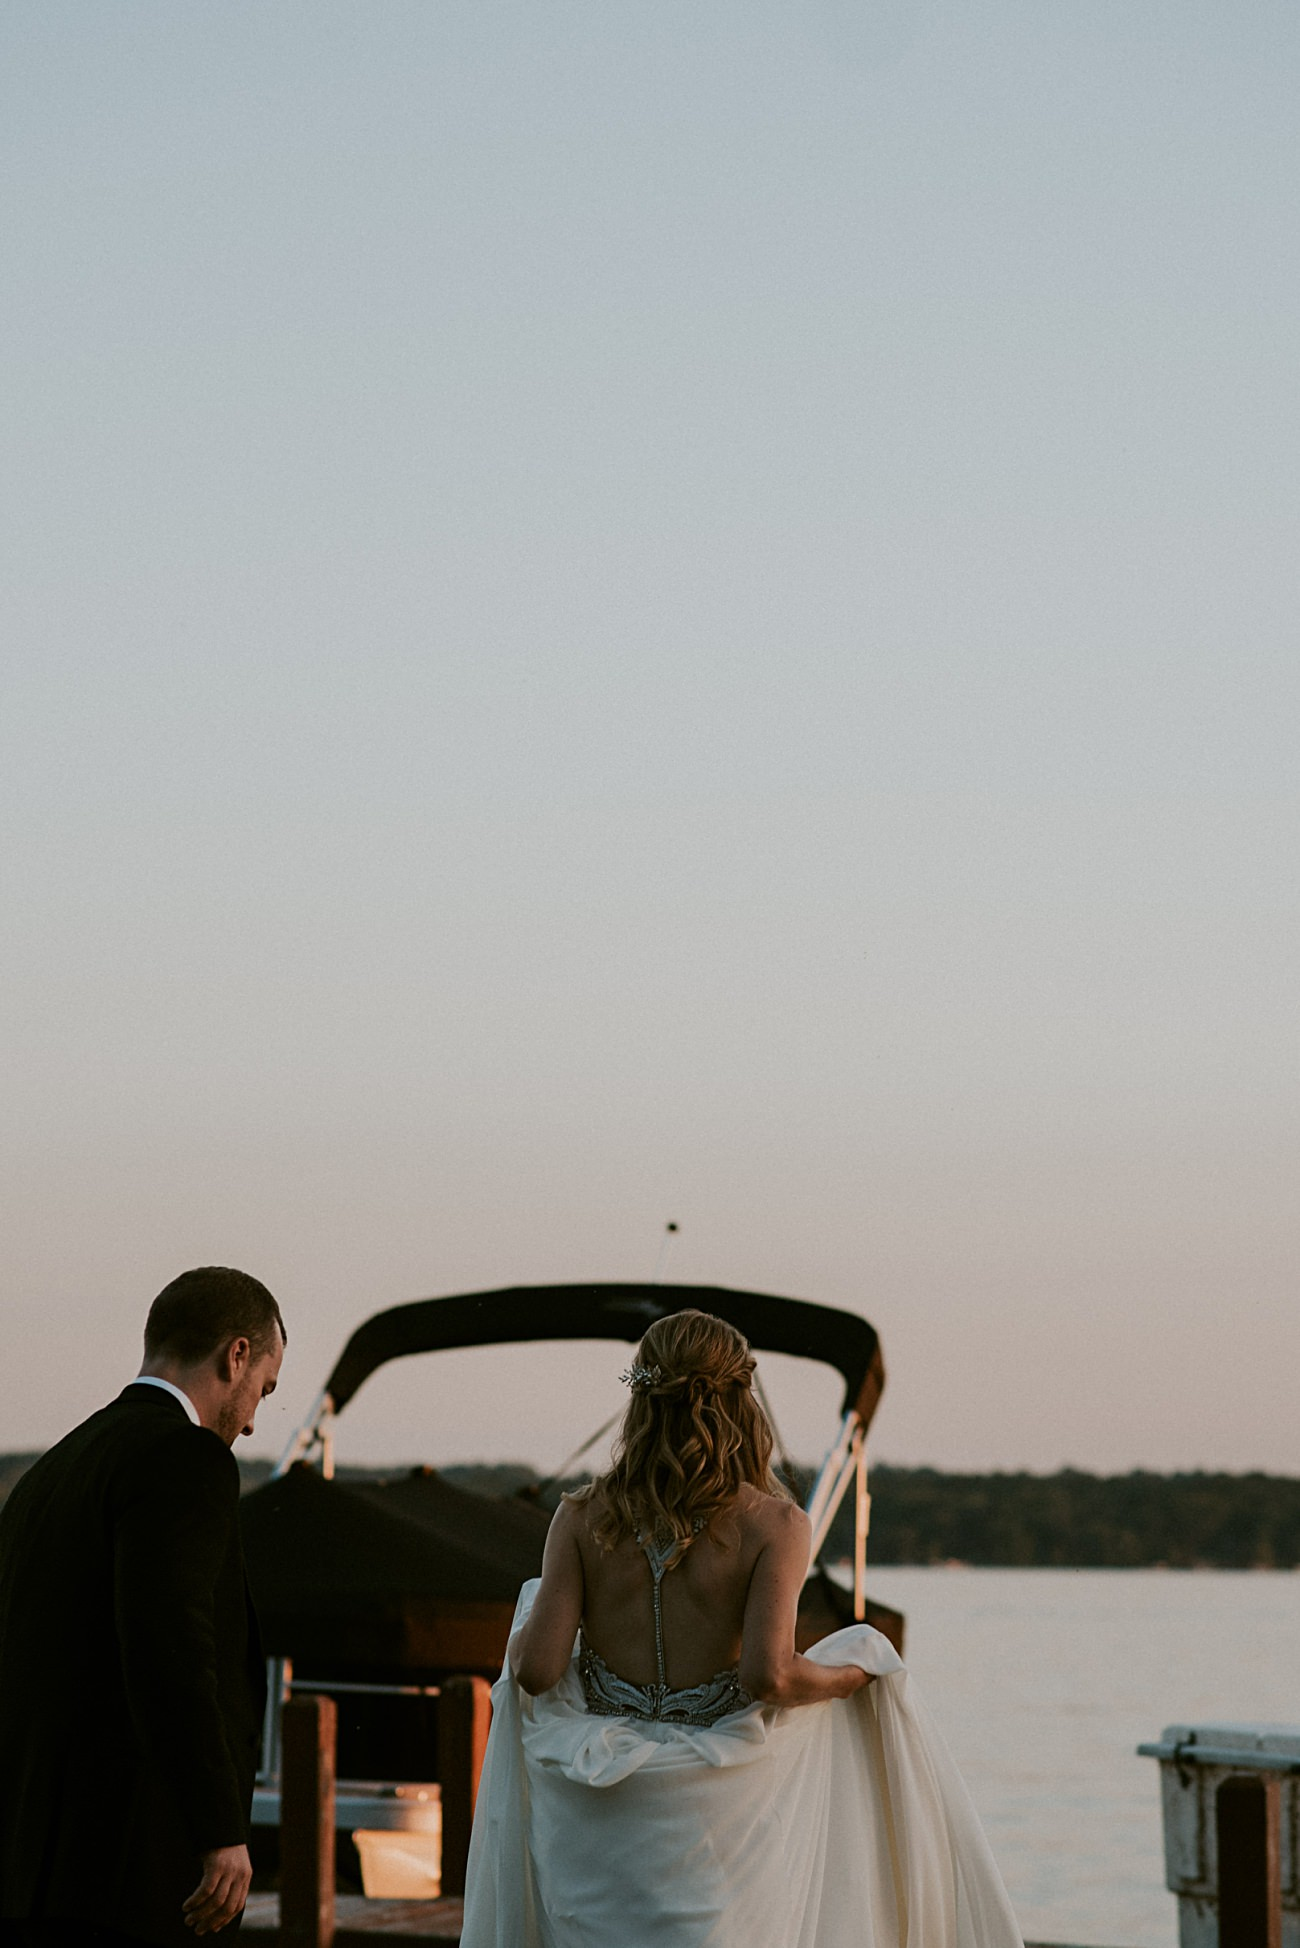 Lakeside bride and groom photos, sunset photos, Elegant Ballroom Wedding, Gold & Blush Wedding, Lakeside wedding in Green Lake Wisconsin -Heidel House Wedding - Green Lake Wisconsin Wedding